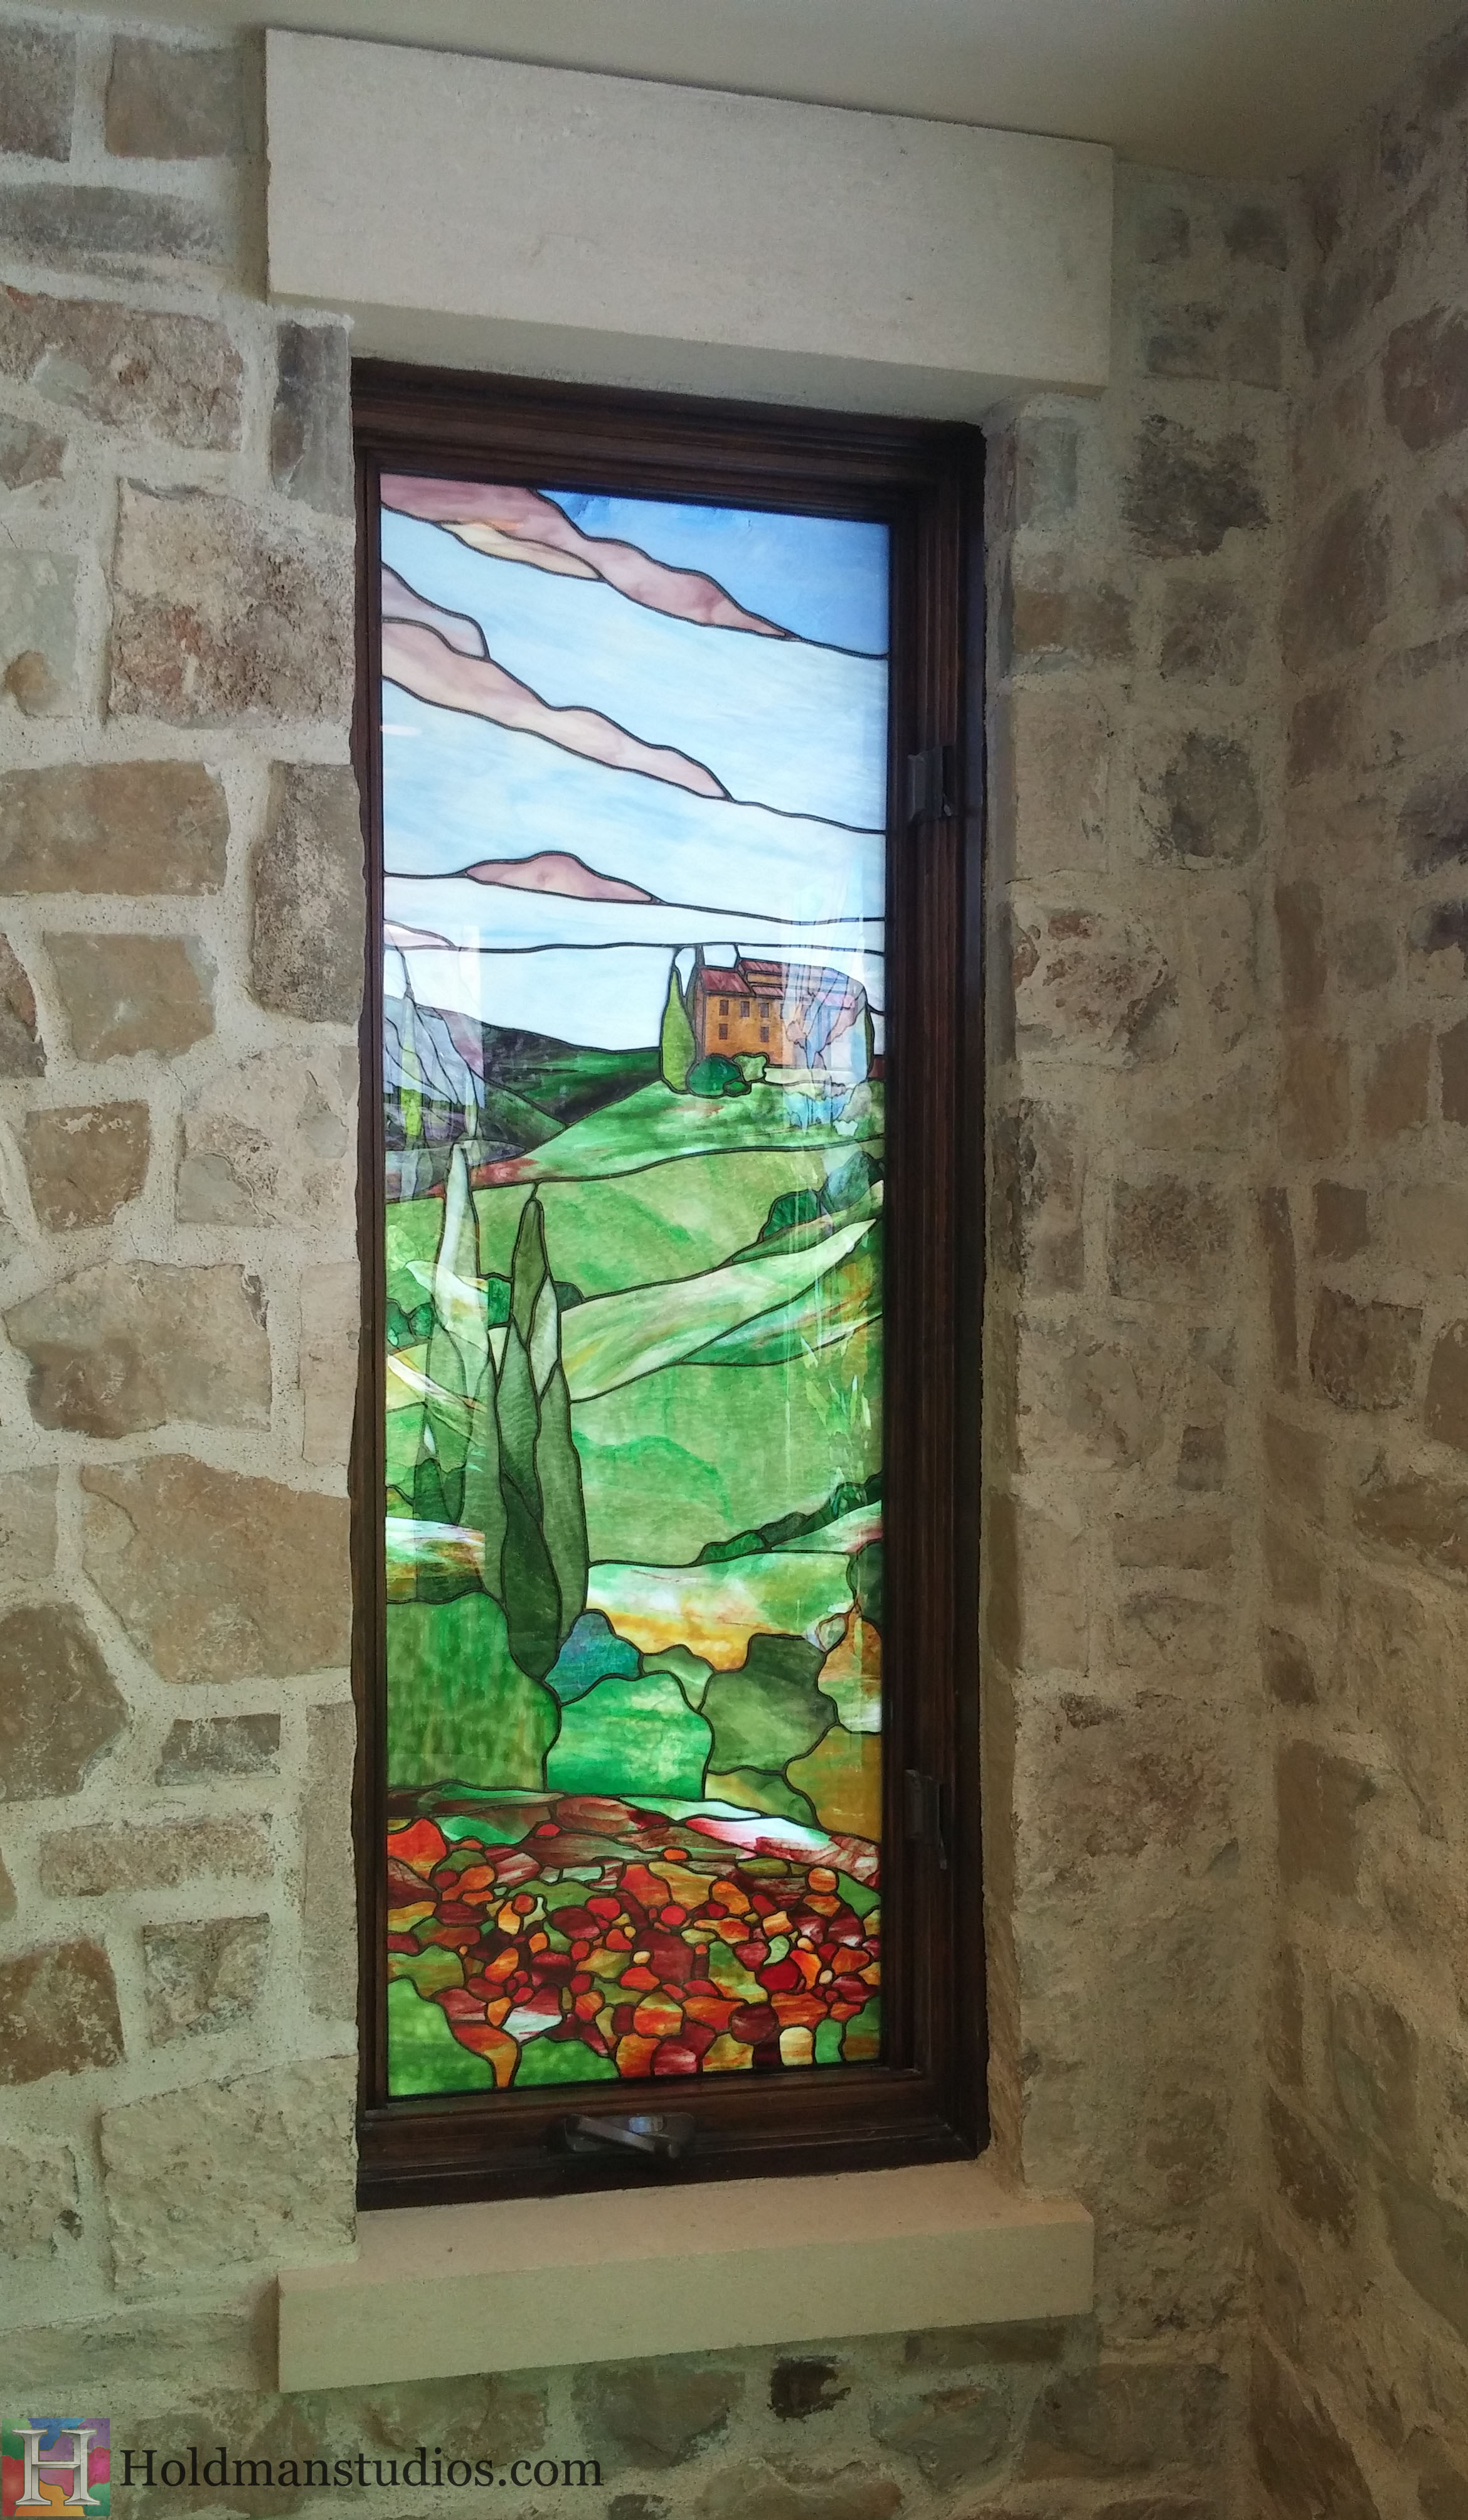 Holdman-Studios-Stained-Glass-Window-Landscape-Trees-Flowers-House-Hill-Sky.jpg